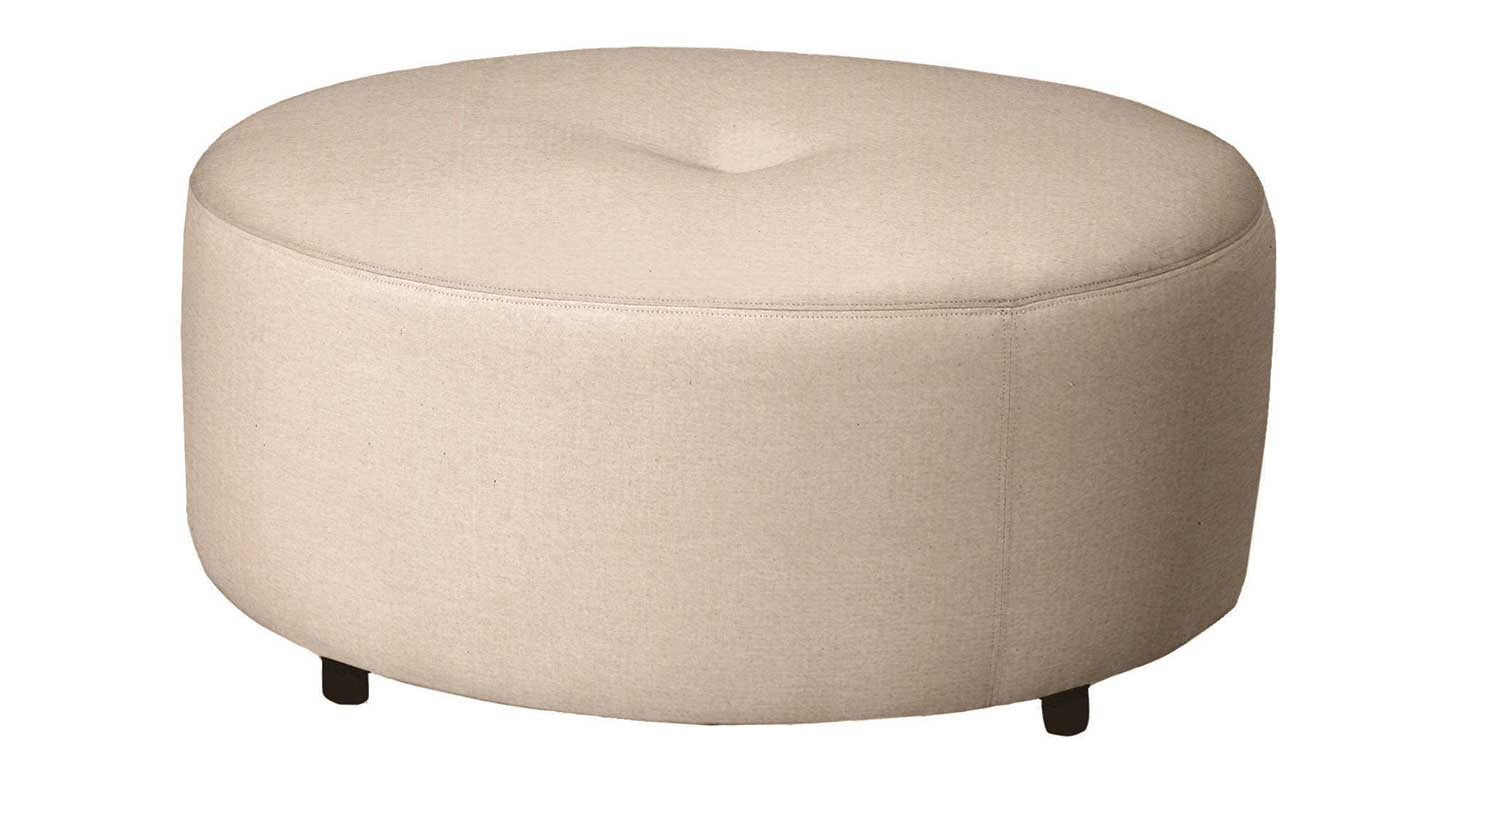 Pouf Chair Circle Furniture Pouf Ottoman Ottomans Boston Circle